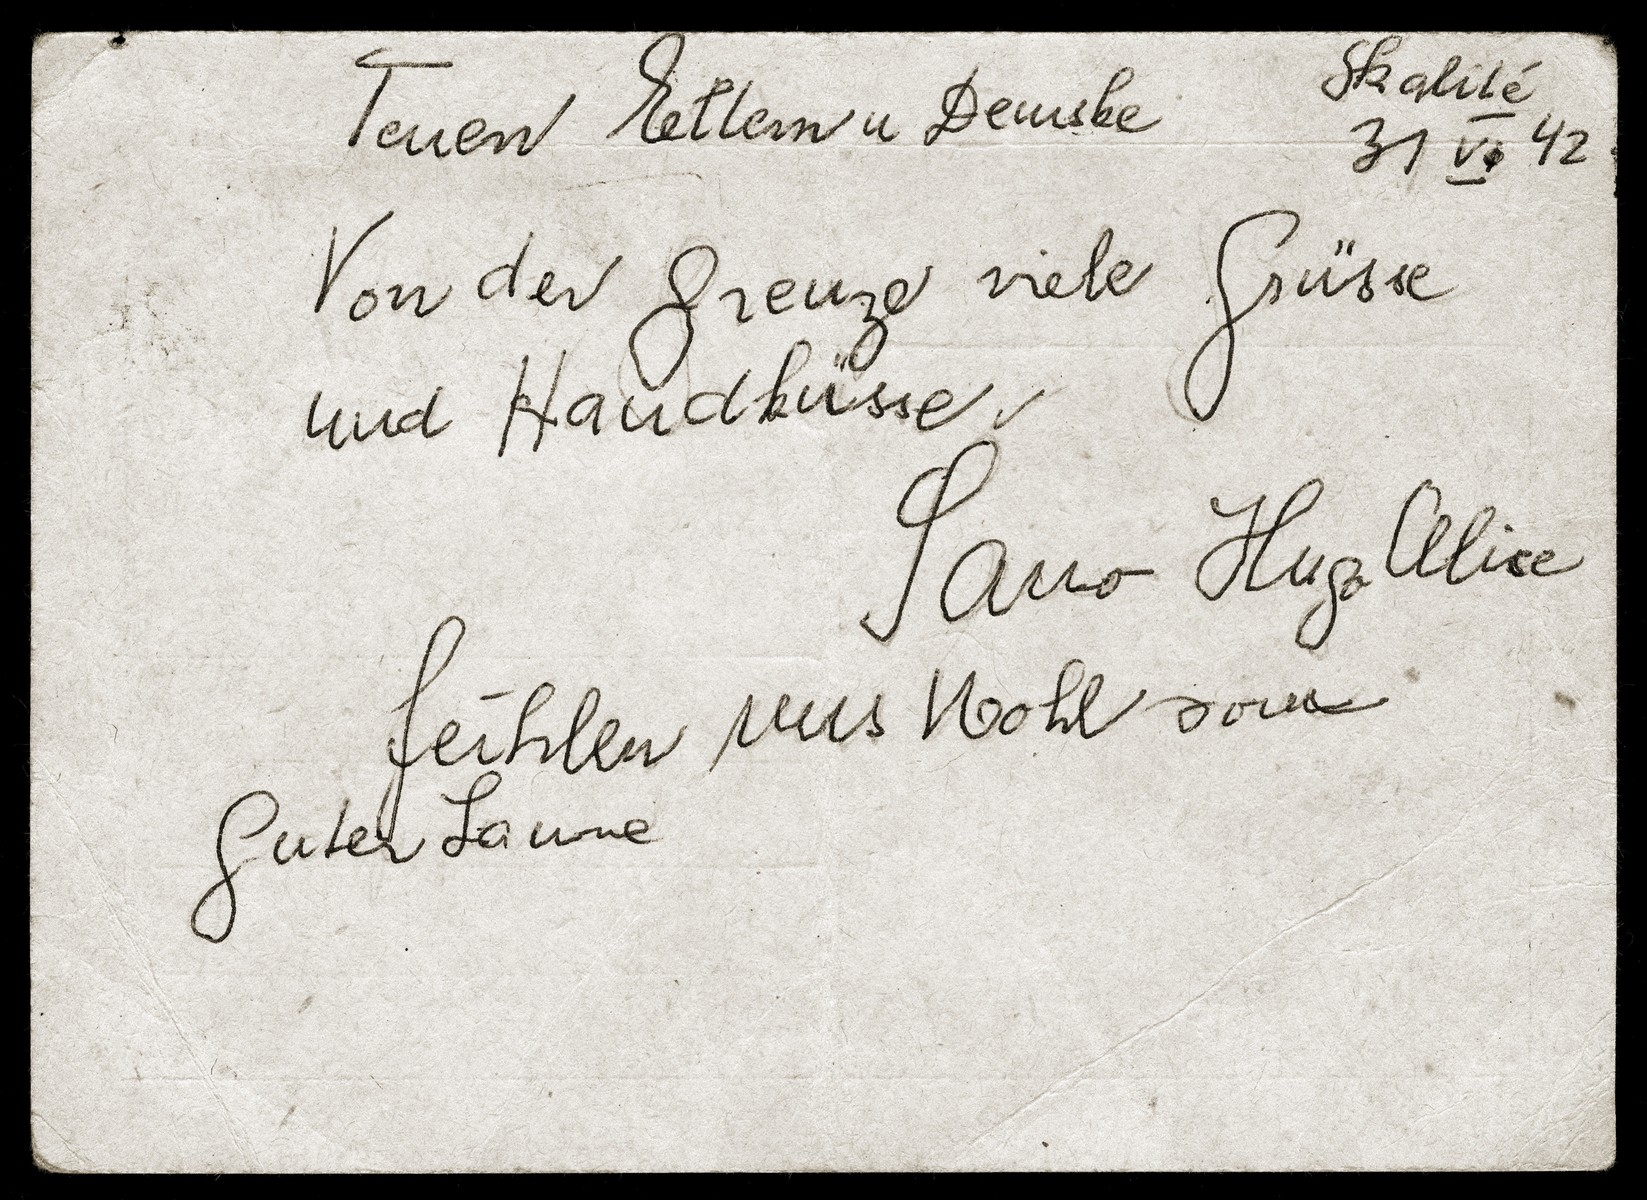 A postcard from Alexander, Hugo and Alice Elbert, written during their deportation to Poland, to their parents and daughter, whom they had left behind in Slovakia.